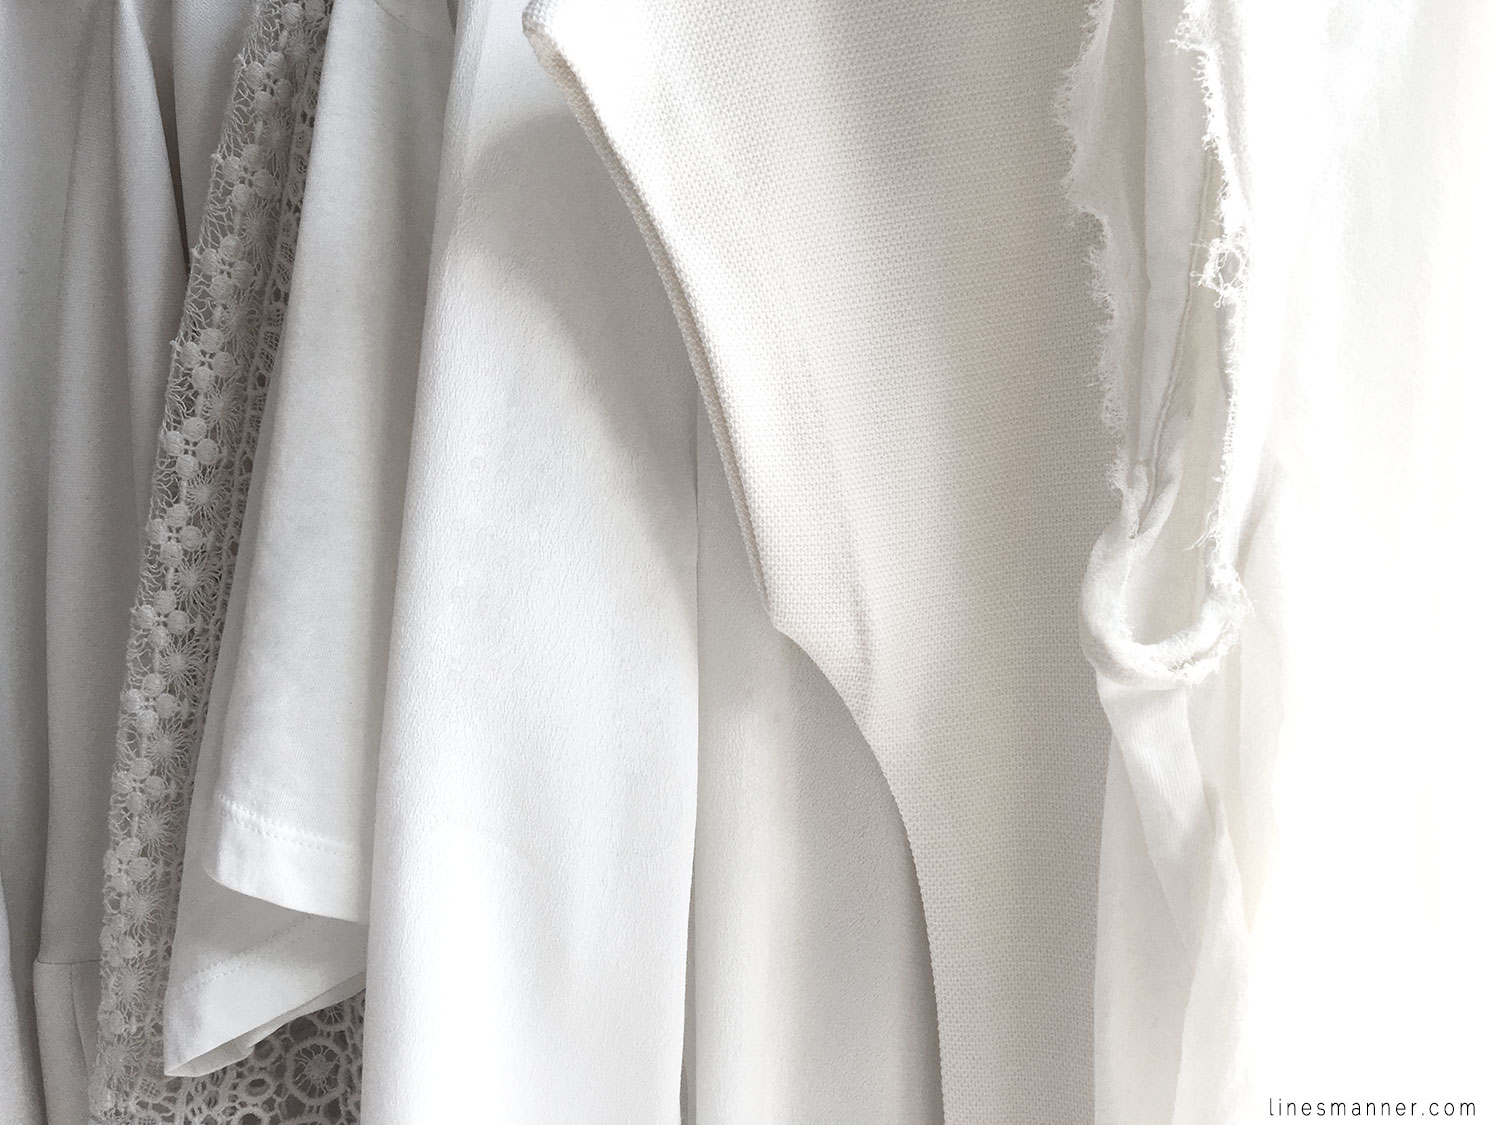 Lines-Manner-Immaculate-Whiteout-White-Off_White-Design-Structure-Clean-Fresh-Sleek-Fashion-Minimal-Wardrobe-Details-Pure-Simplicity-4